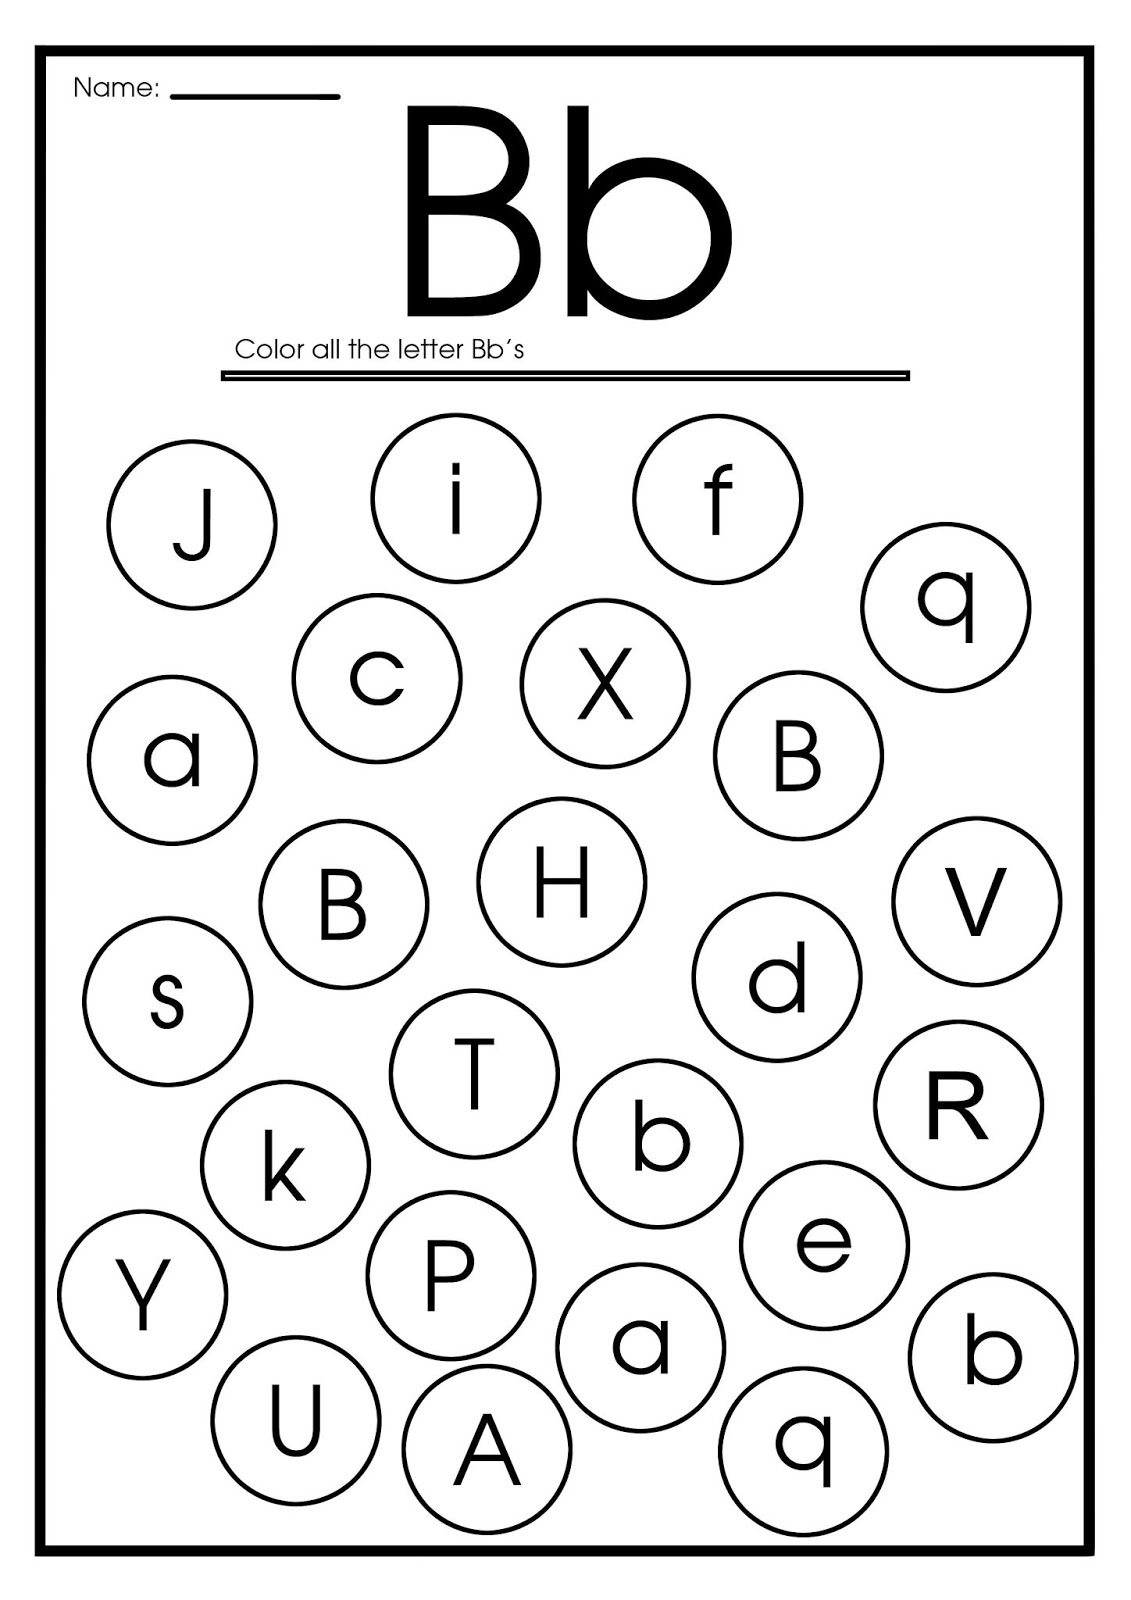 photograph relating to Letter B Printable Worksheets identify Letter B Worksheets, Flash Playing cards, Coloring Web pages